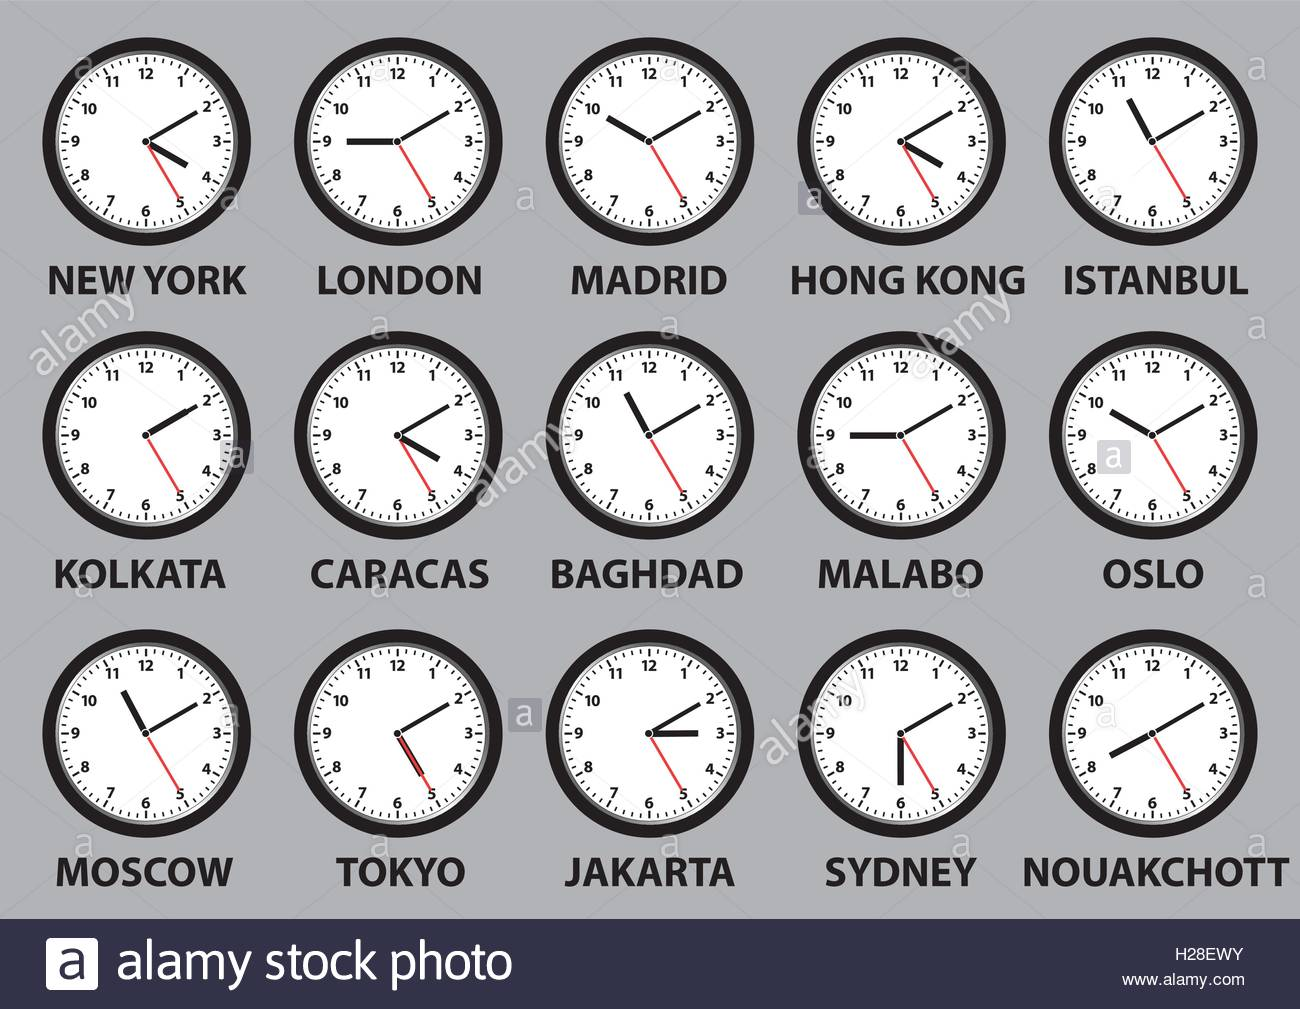 Some clocks faces showing time differences in diverse world cities. vector illustration - Stock Vector